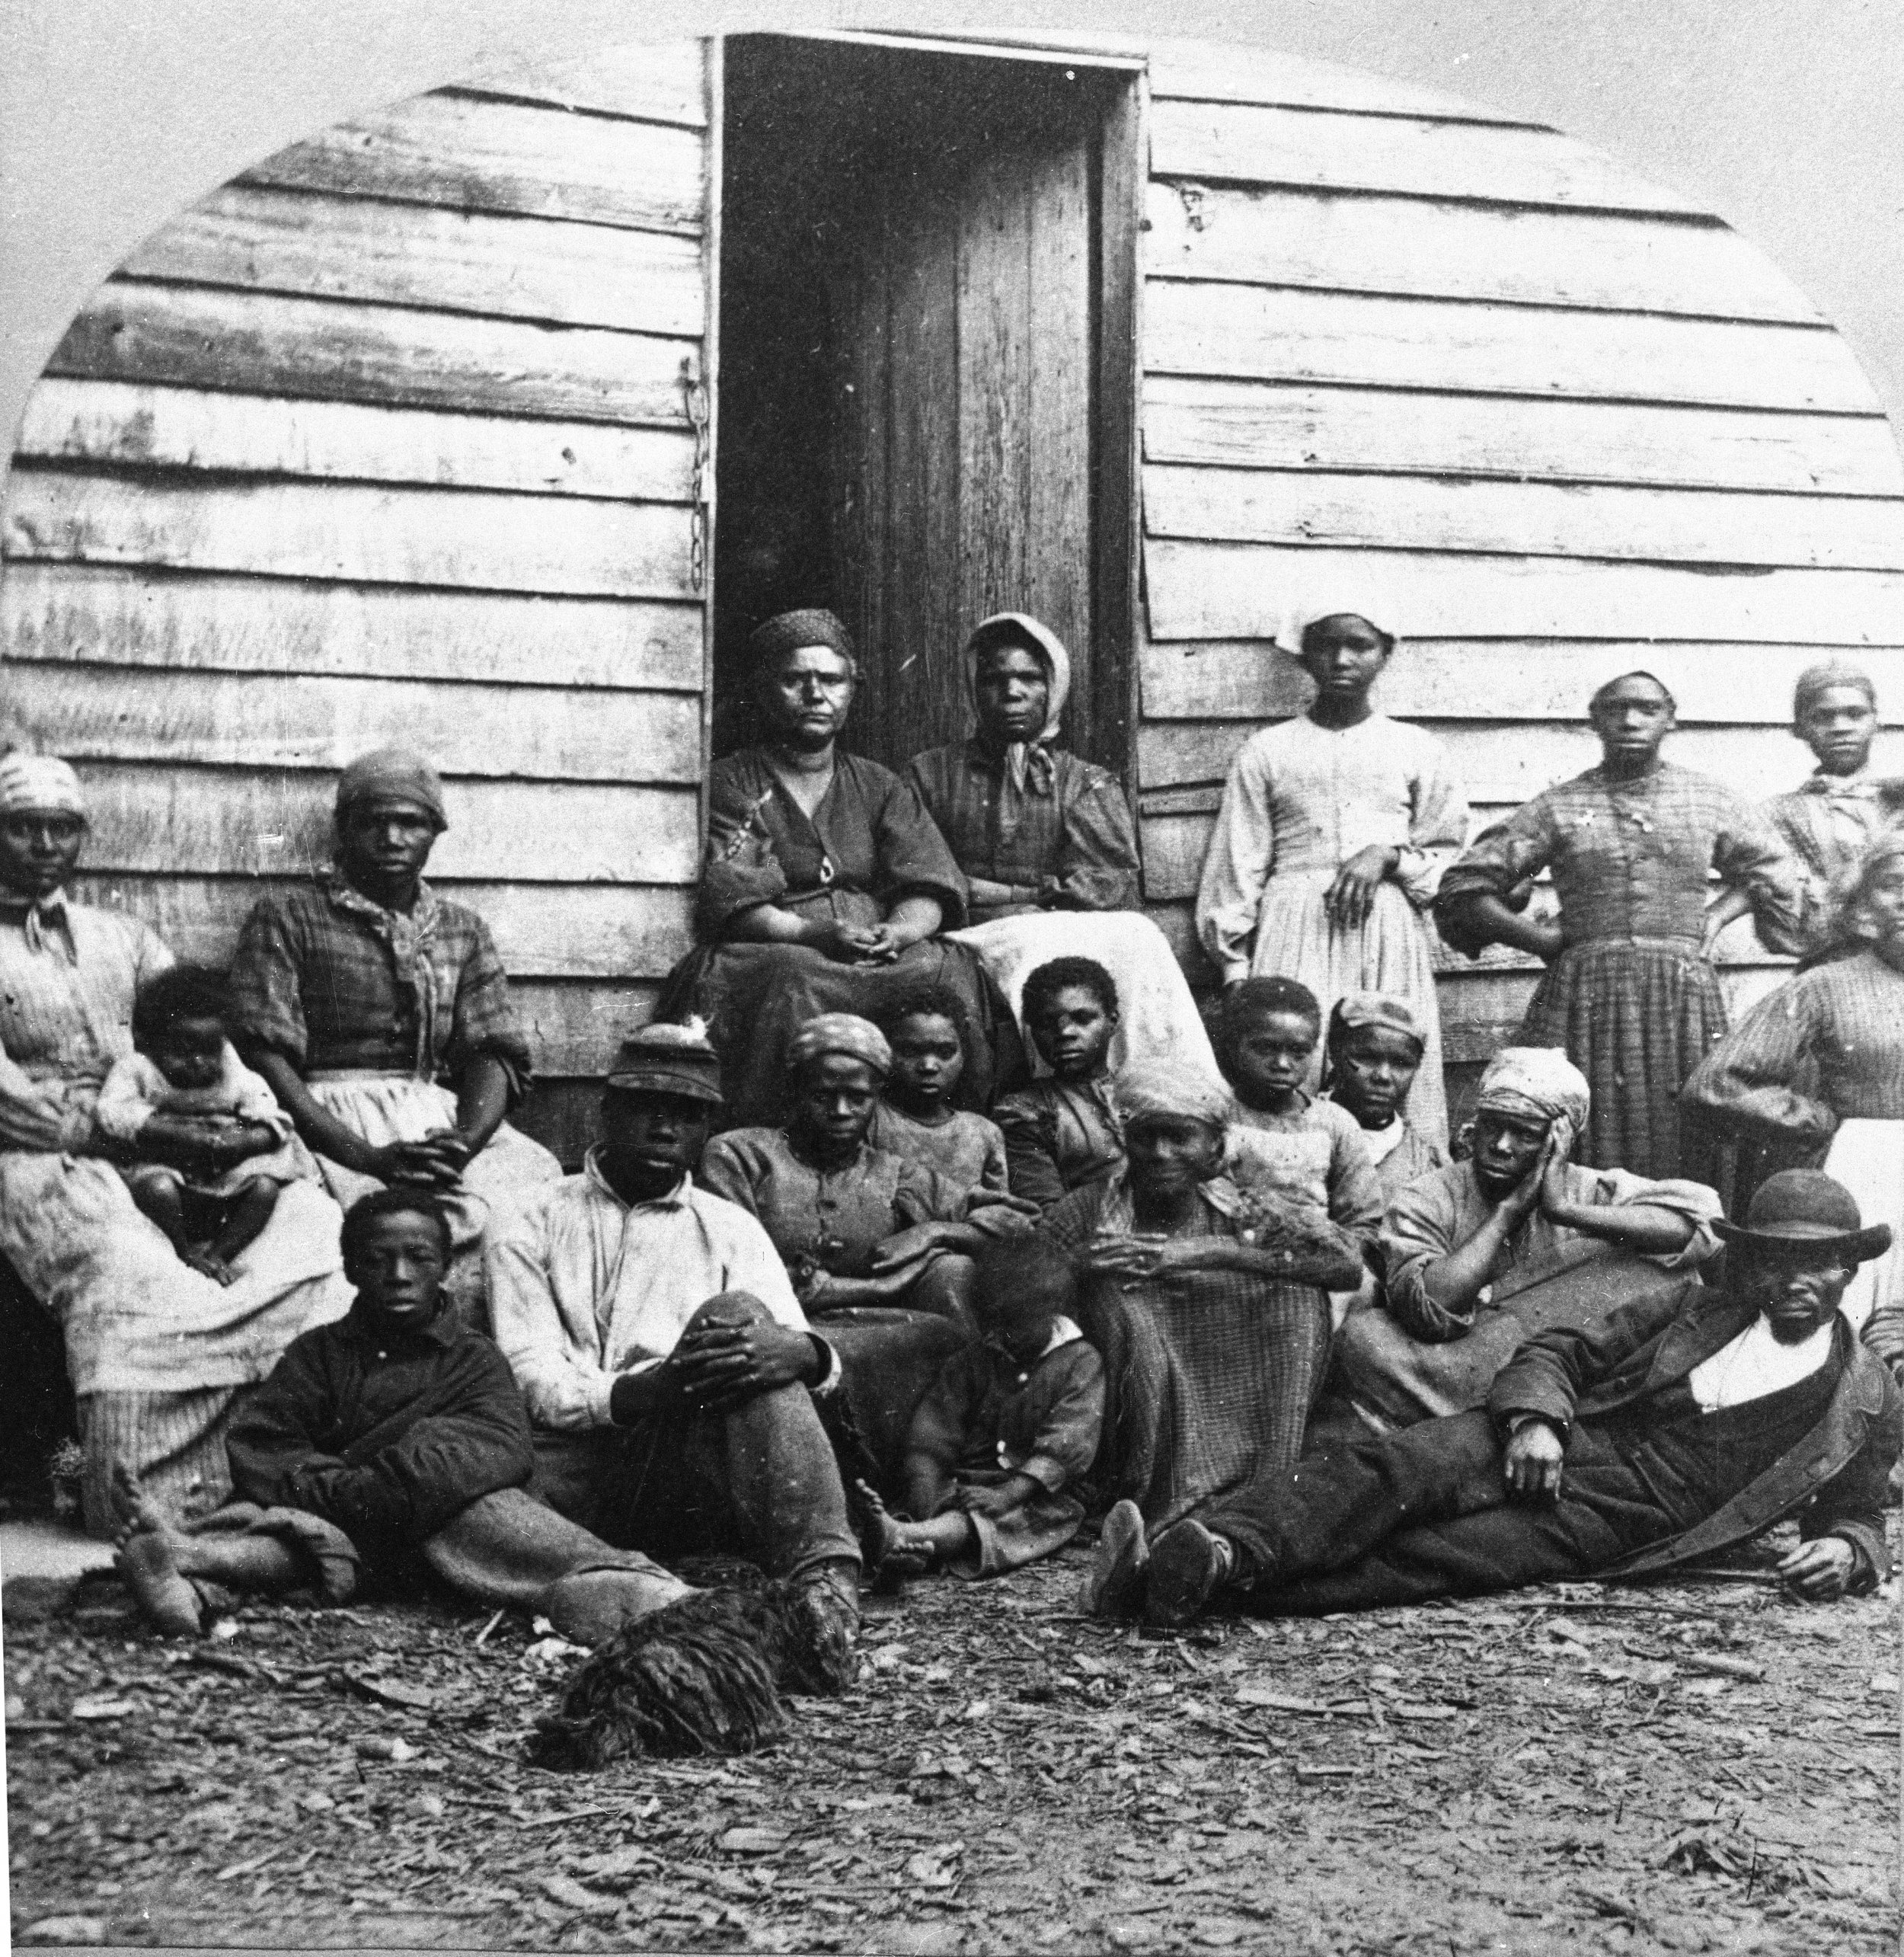 the freeing of slaves after the civil war and faith of afro americans in the united states Afro indians in history by jeremy3johnson-1 native americans in the united states slavery in the united states after the civil war which was violated in 1849.